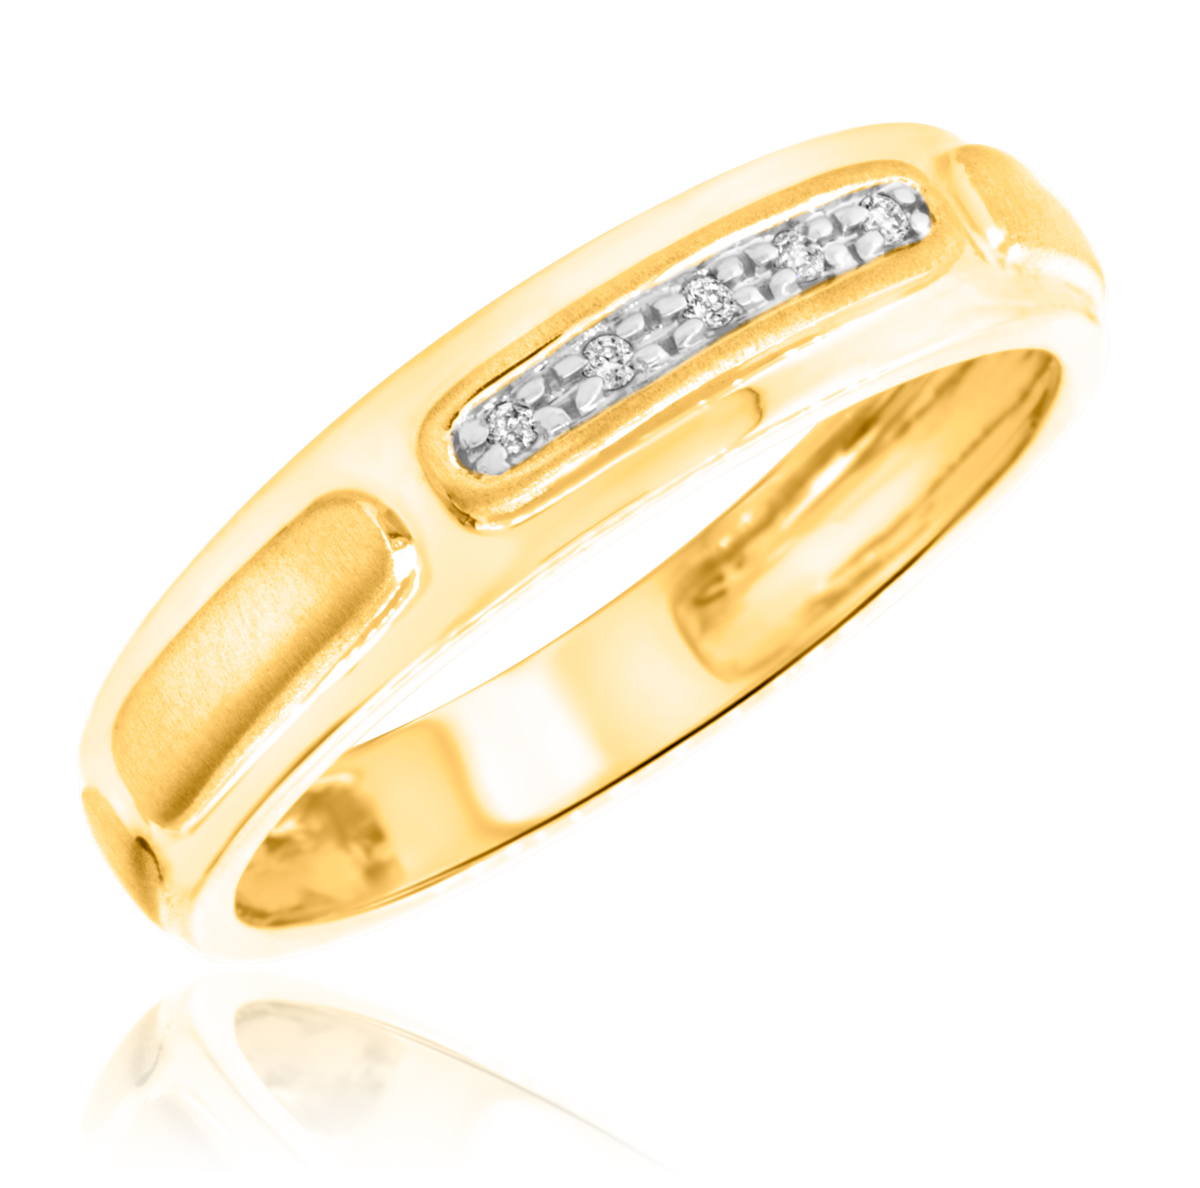 1/20 Carat T.W. Round Cut Diamond Mens Wedding Band 10K Yellow Gold- Size 8